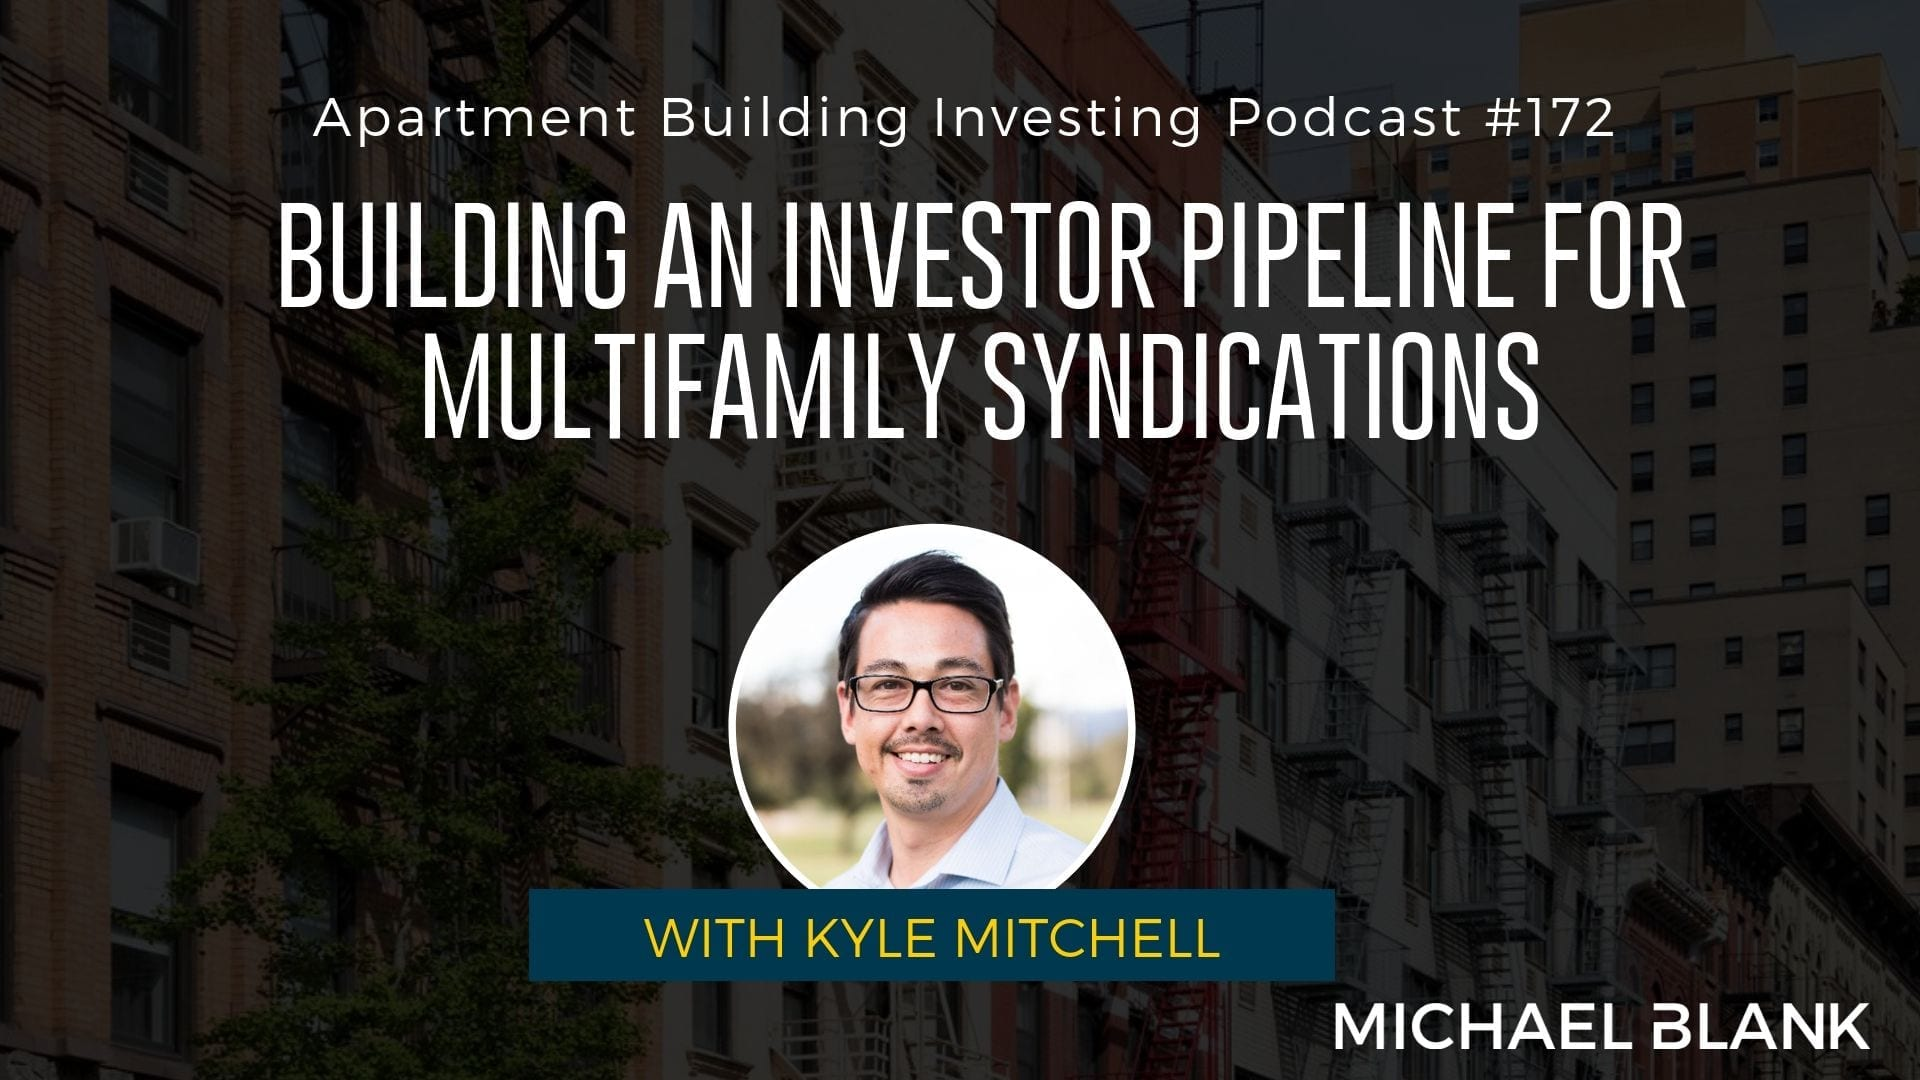 MB 172: Building an Investor Pipeline for Multifamily Syndications – With Kyle Mitchell